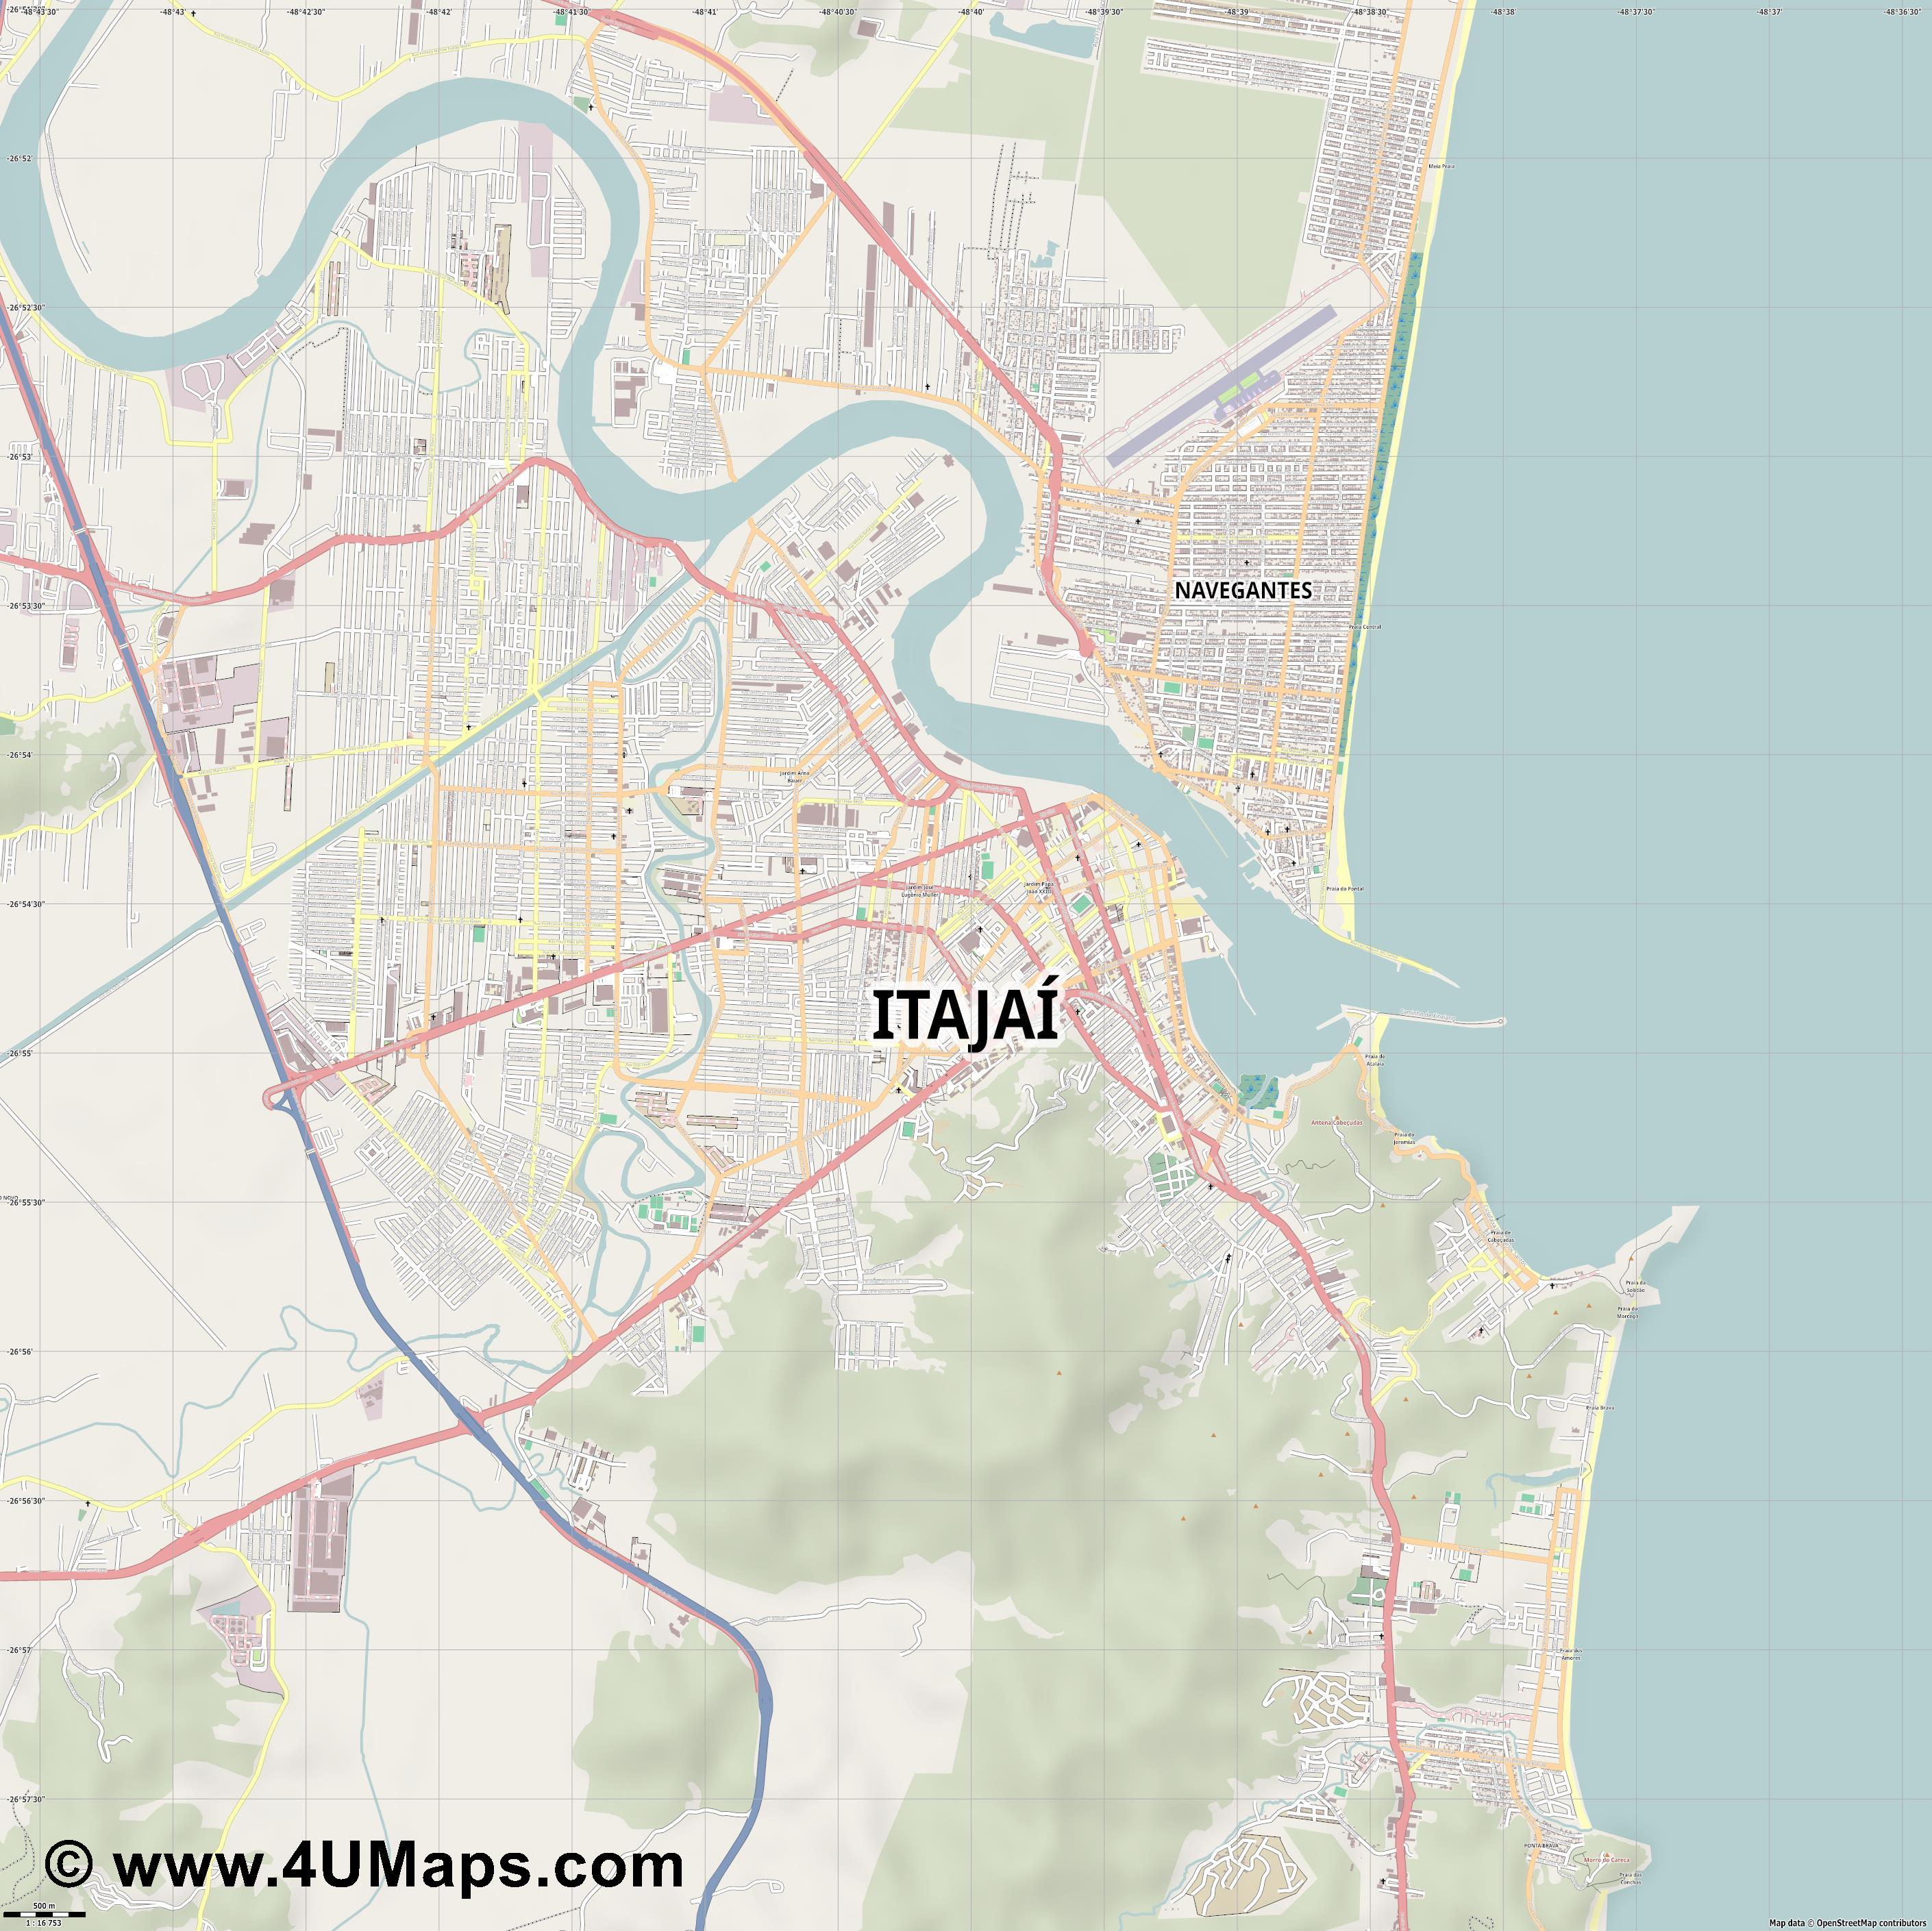 Itajaí  jpg ultra high detail preview vector city map